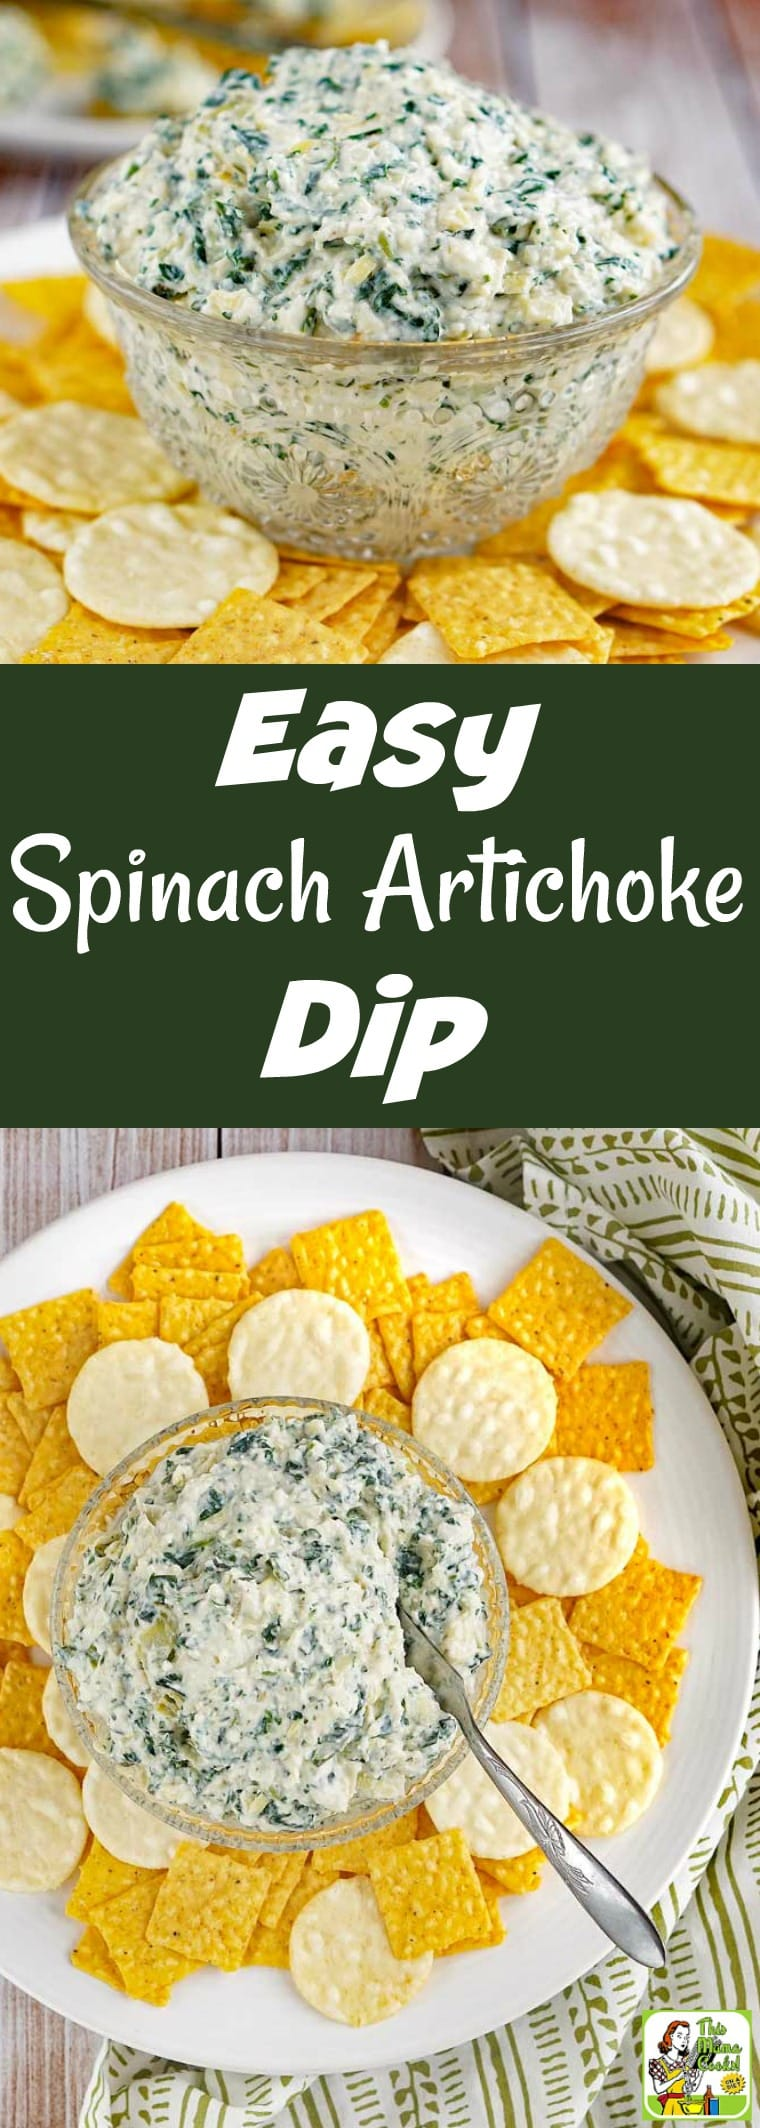 How to Make the Easiest Spinach Artichoke Dip Ever! You'll love this spinach artichoke dip recipe! It's made with Plain Silk Almondmilk Yogurt Alternative and can be made completely vegan with a few simple changes. Your guests will love this delicious party appetizer and it can be made in 20 minutes! #yogurt #spinach #appetizer #dip #vegan #glutenfree #dairyfree